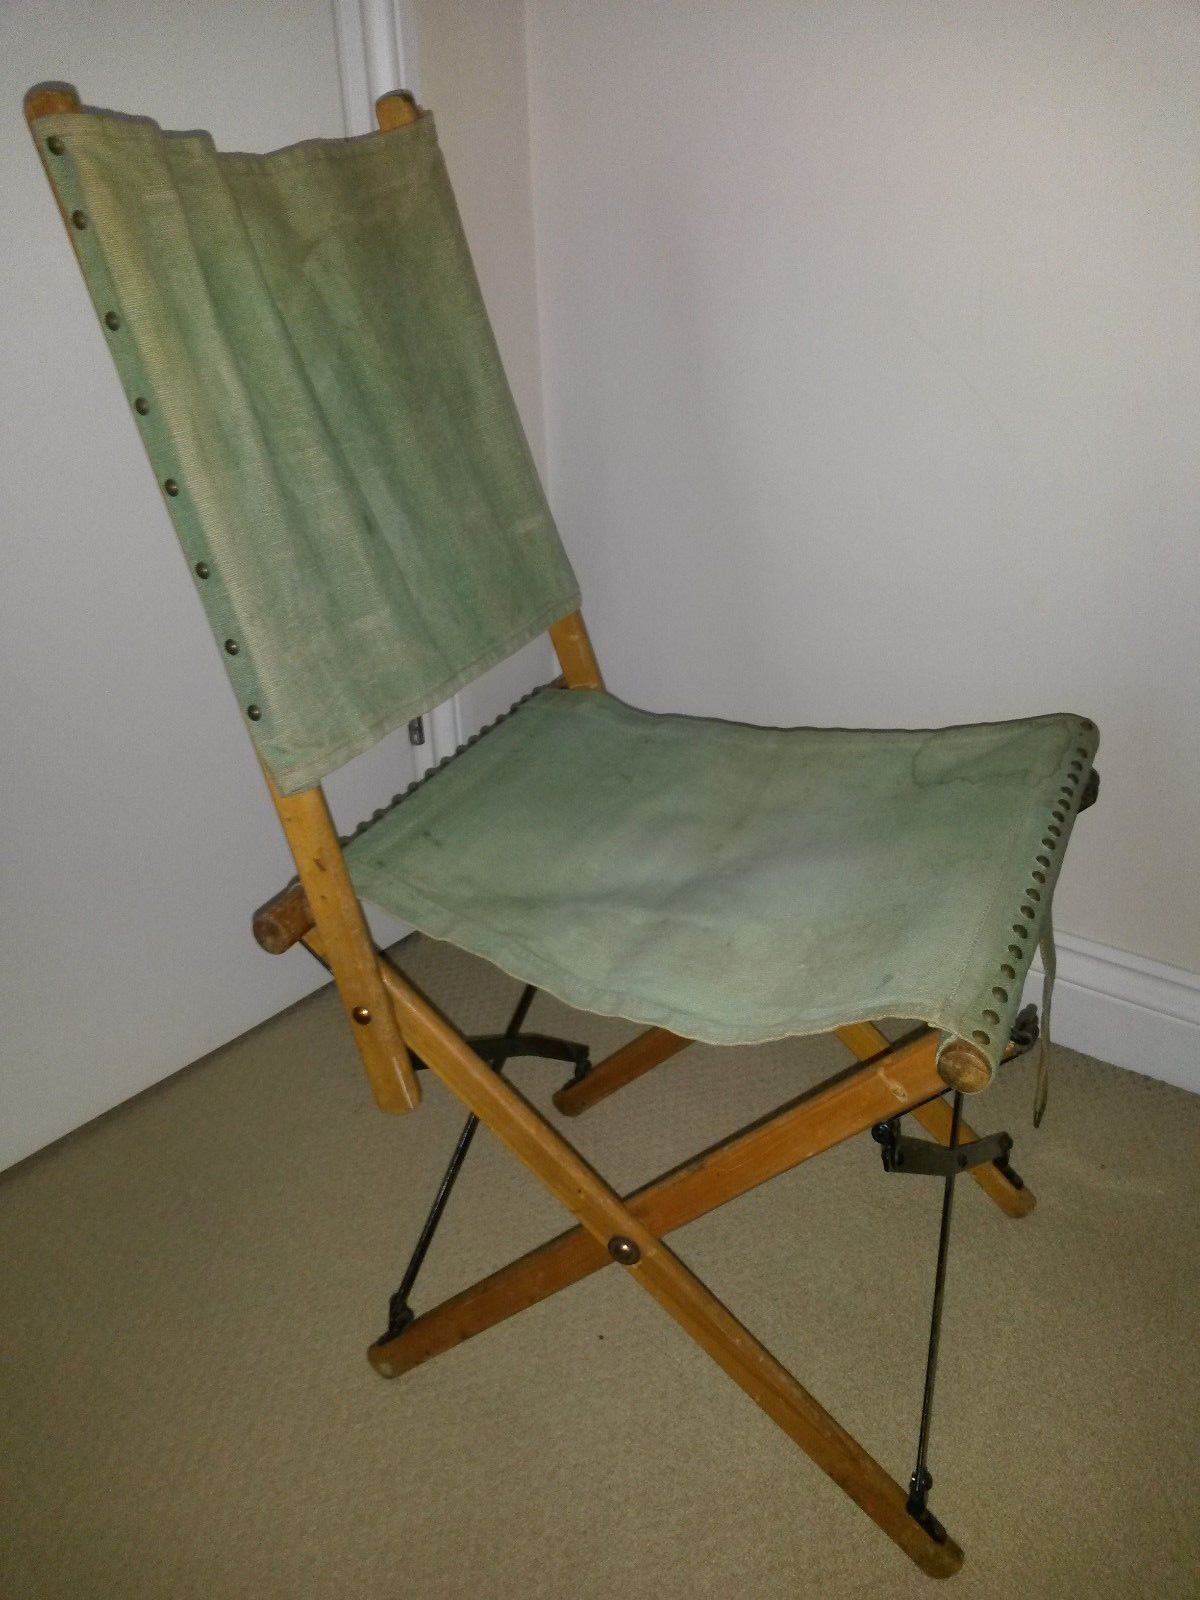 British Army ficer s folding chair A name was written on the